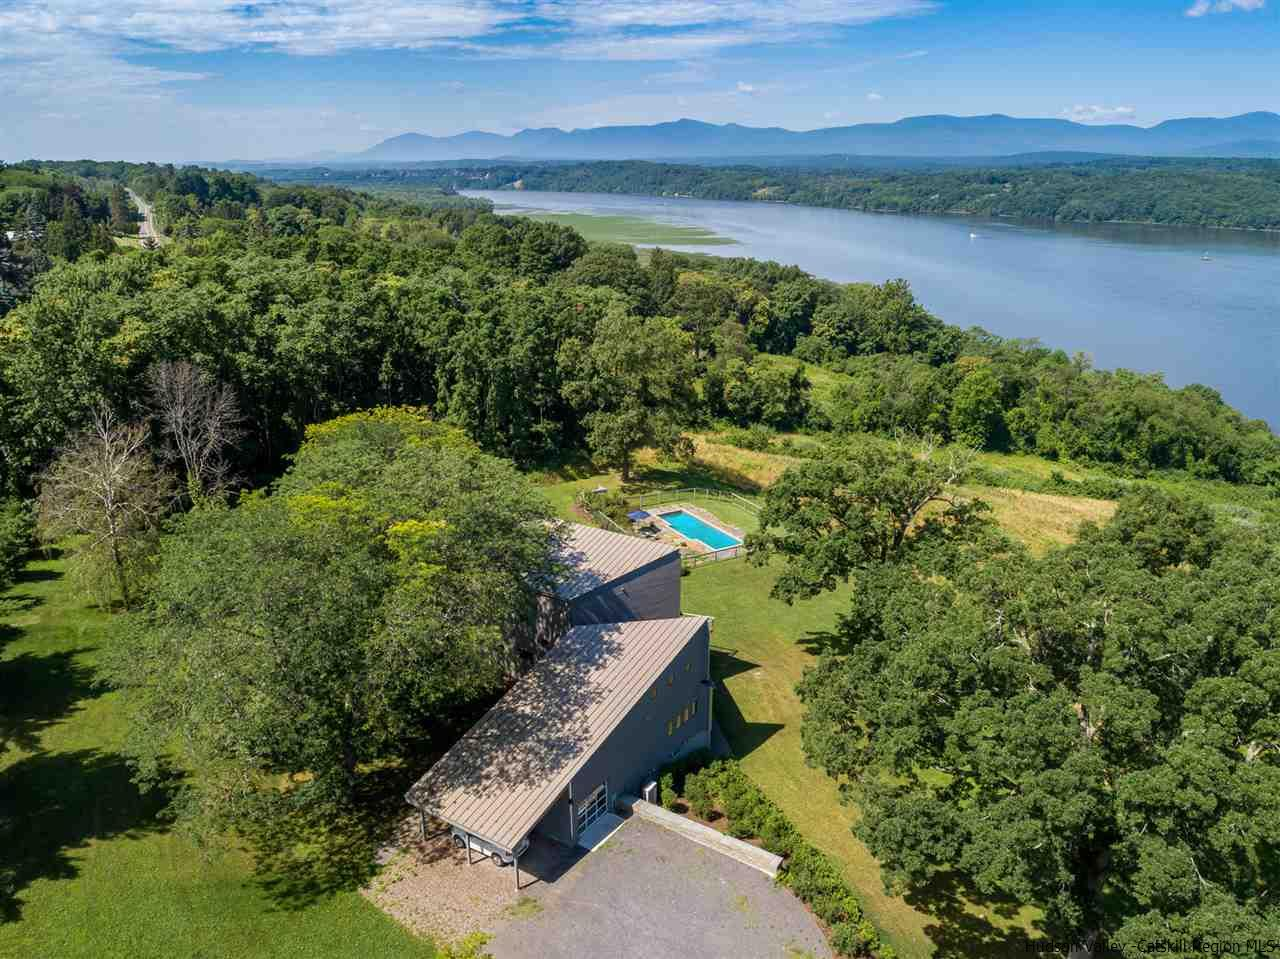 The Young House on the Hudson in relation to the surrounding landscape